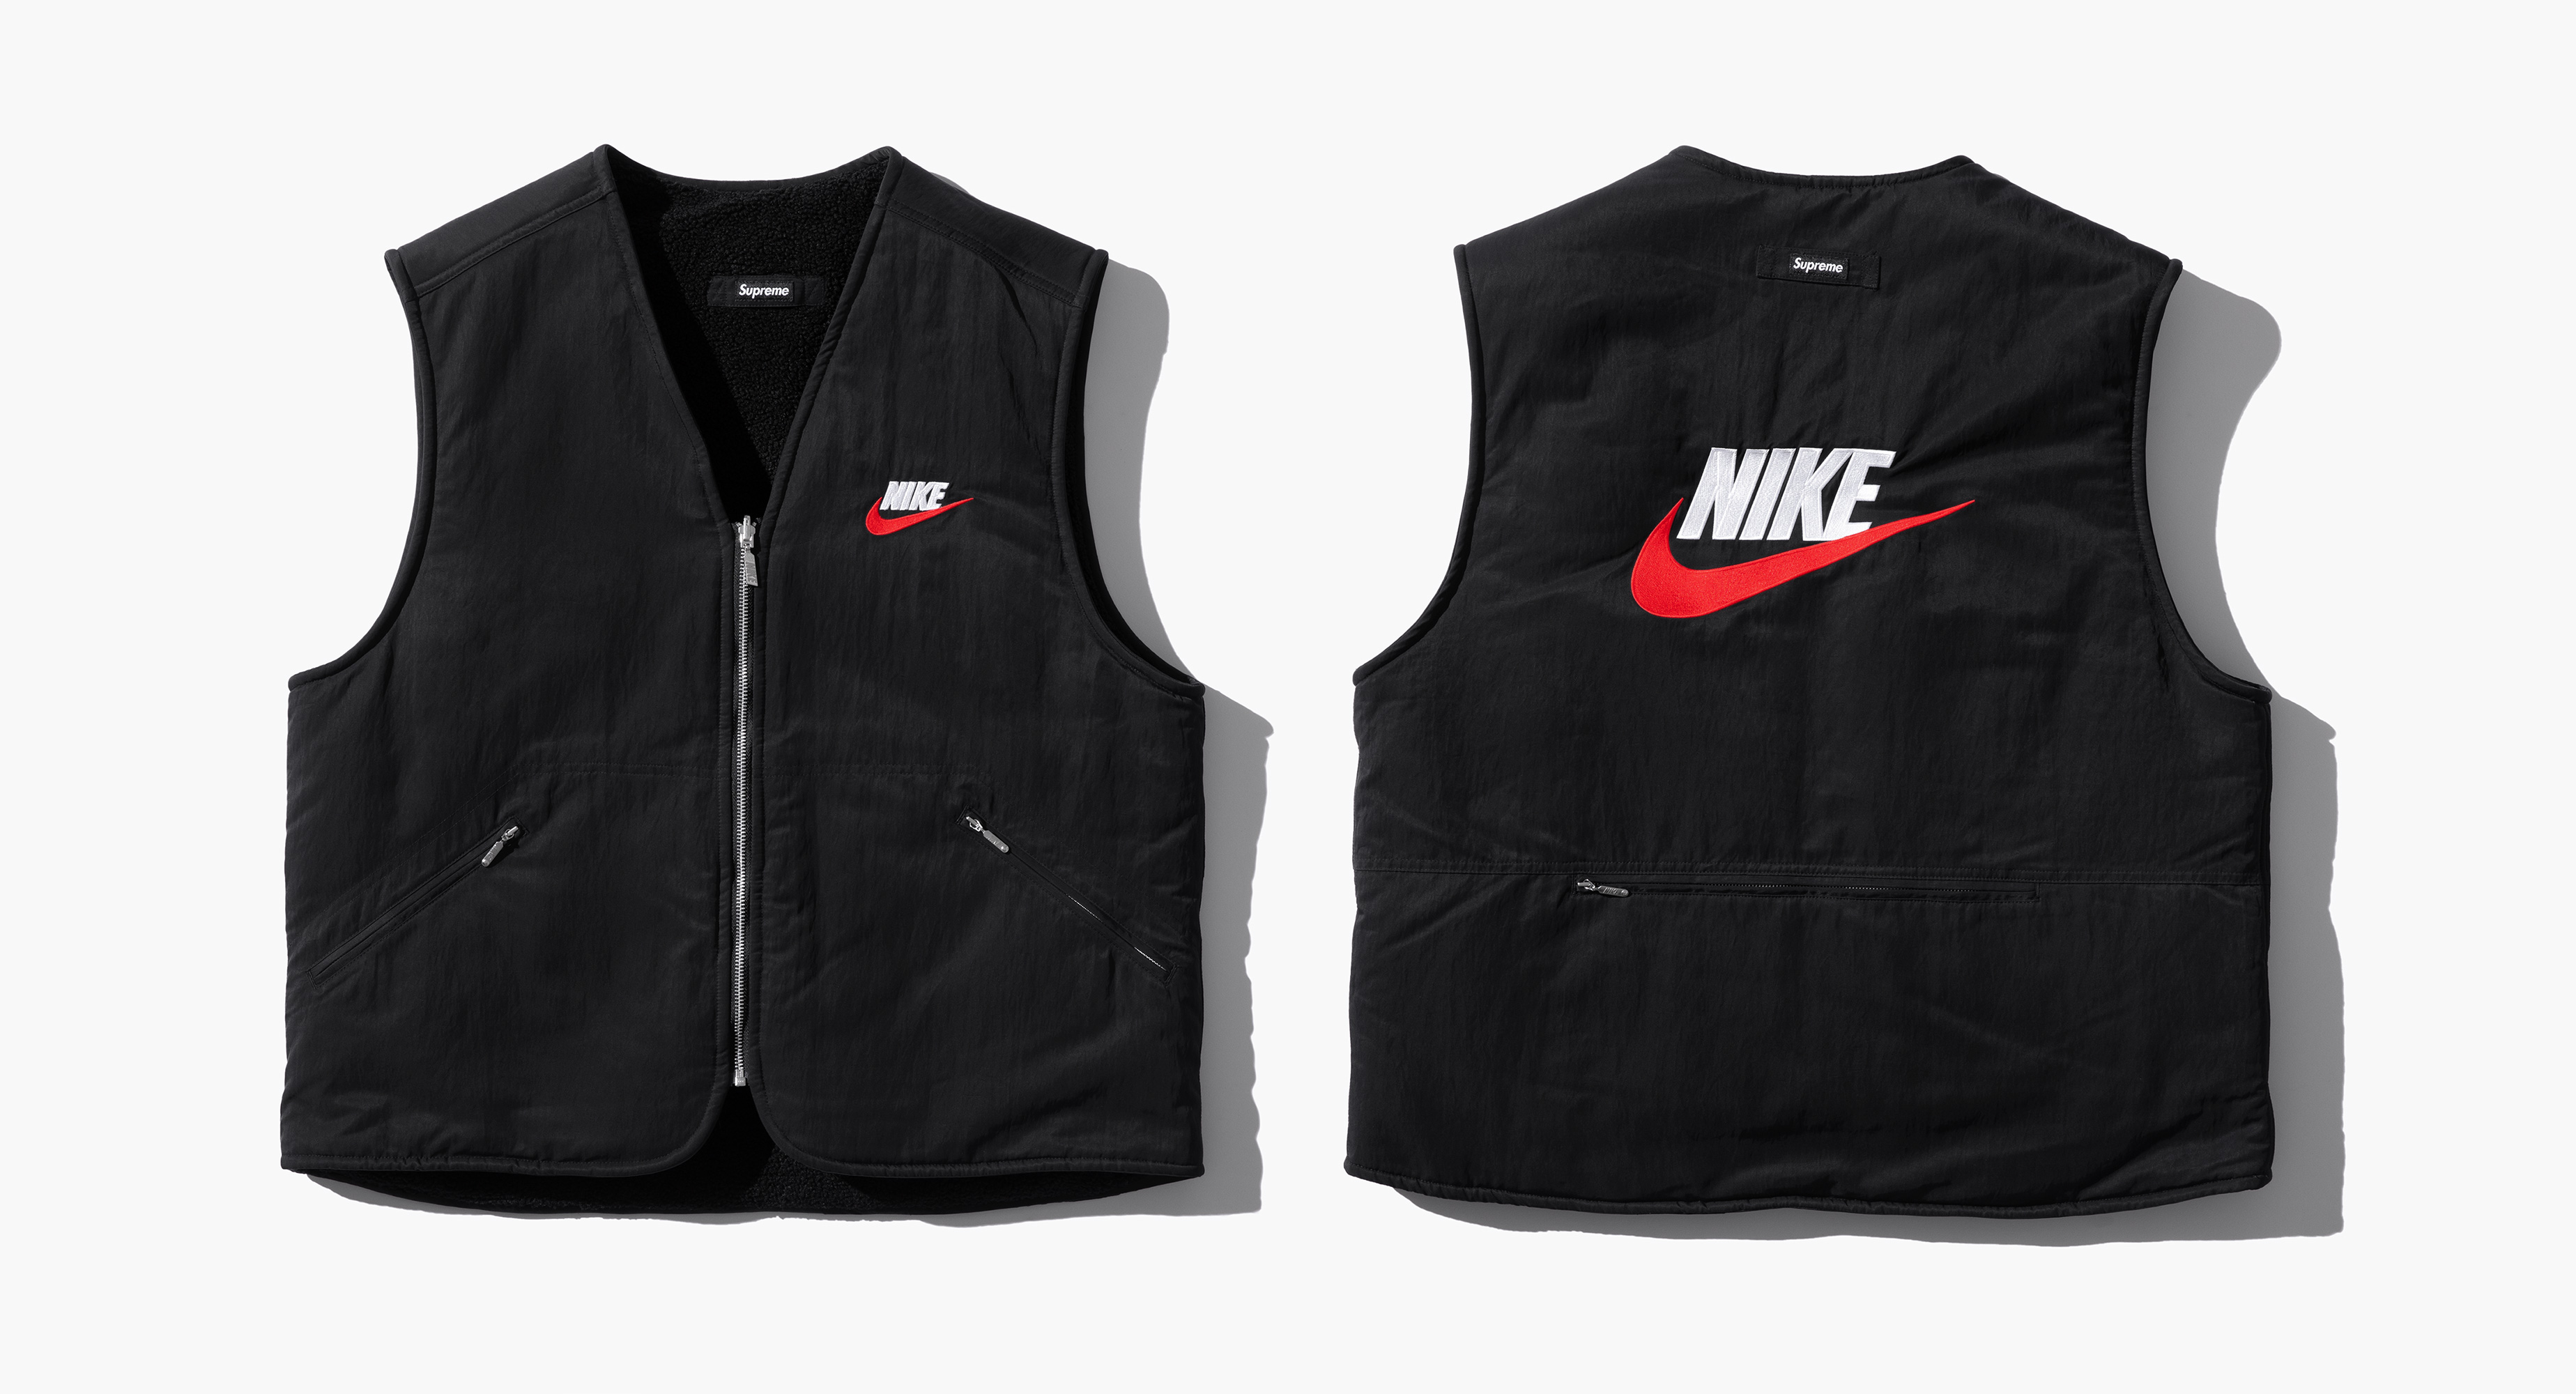 on sale 67278 a8935 Supreme x Nike Fall/Winter 2018 Collection | The Source